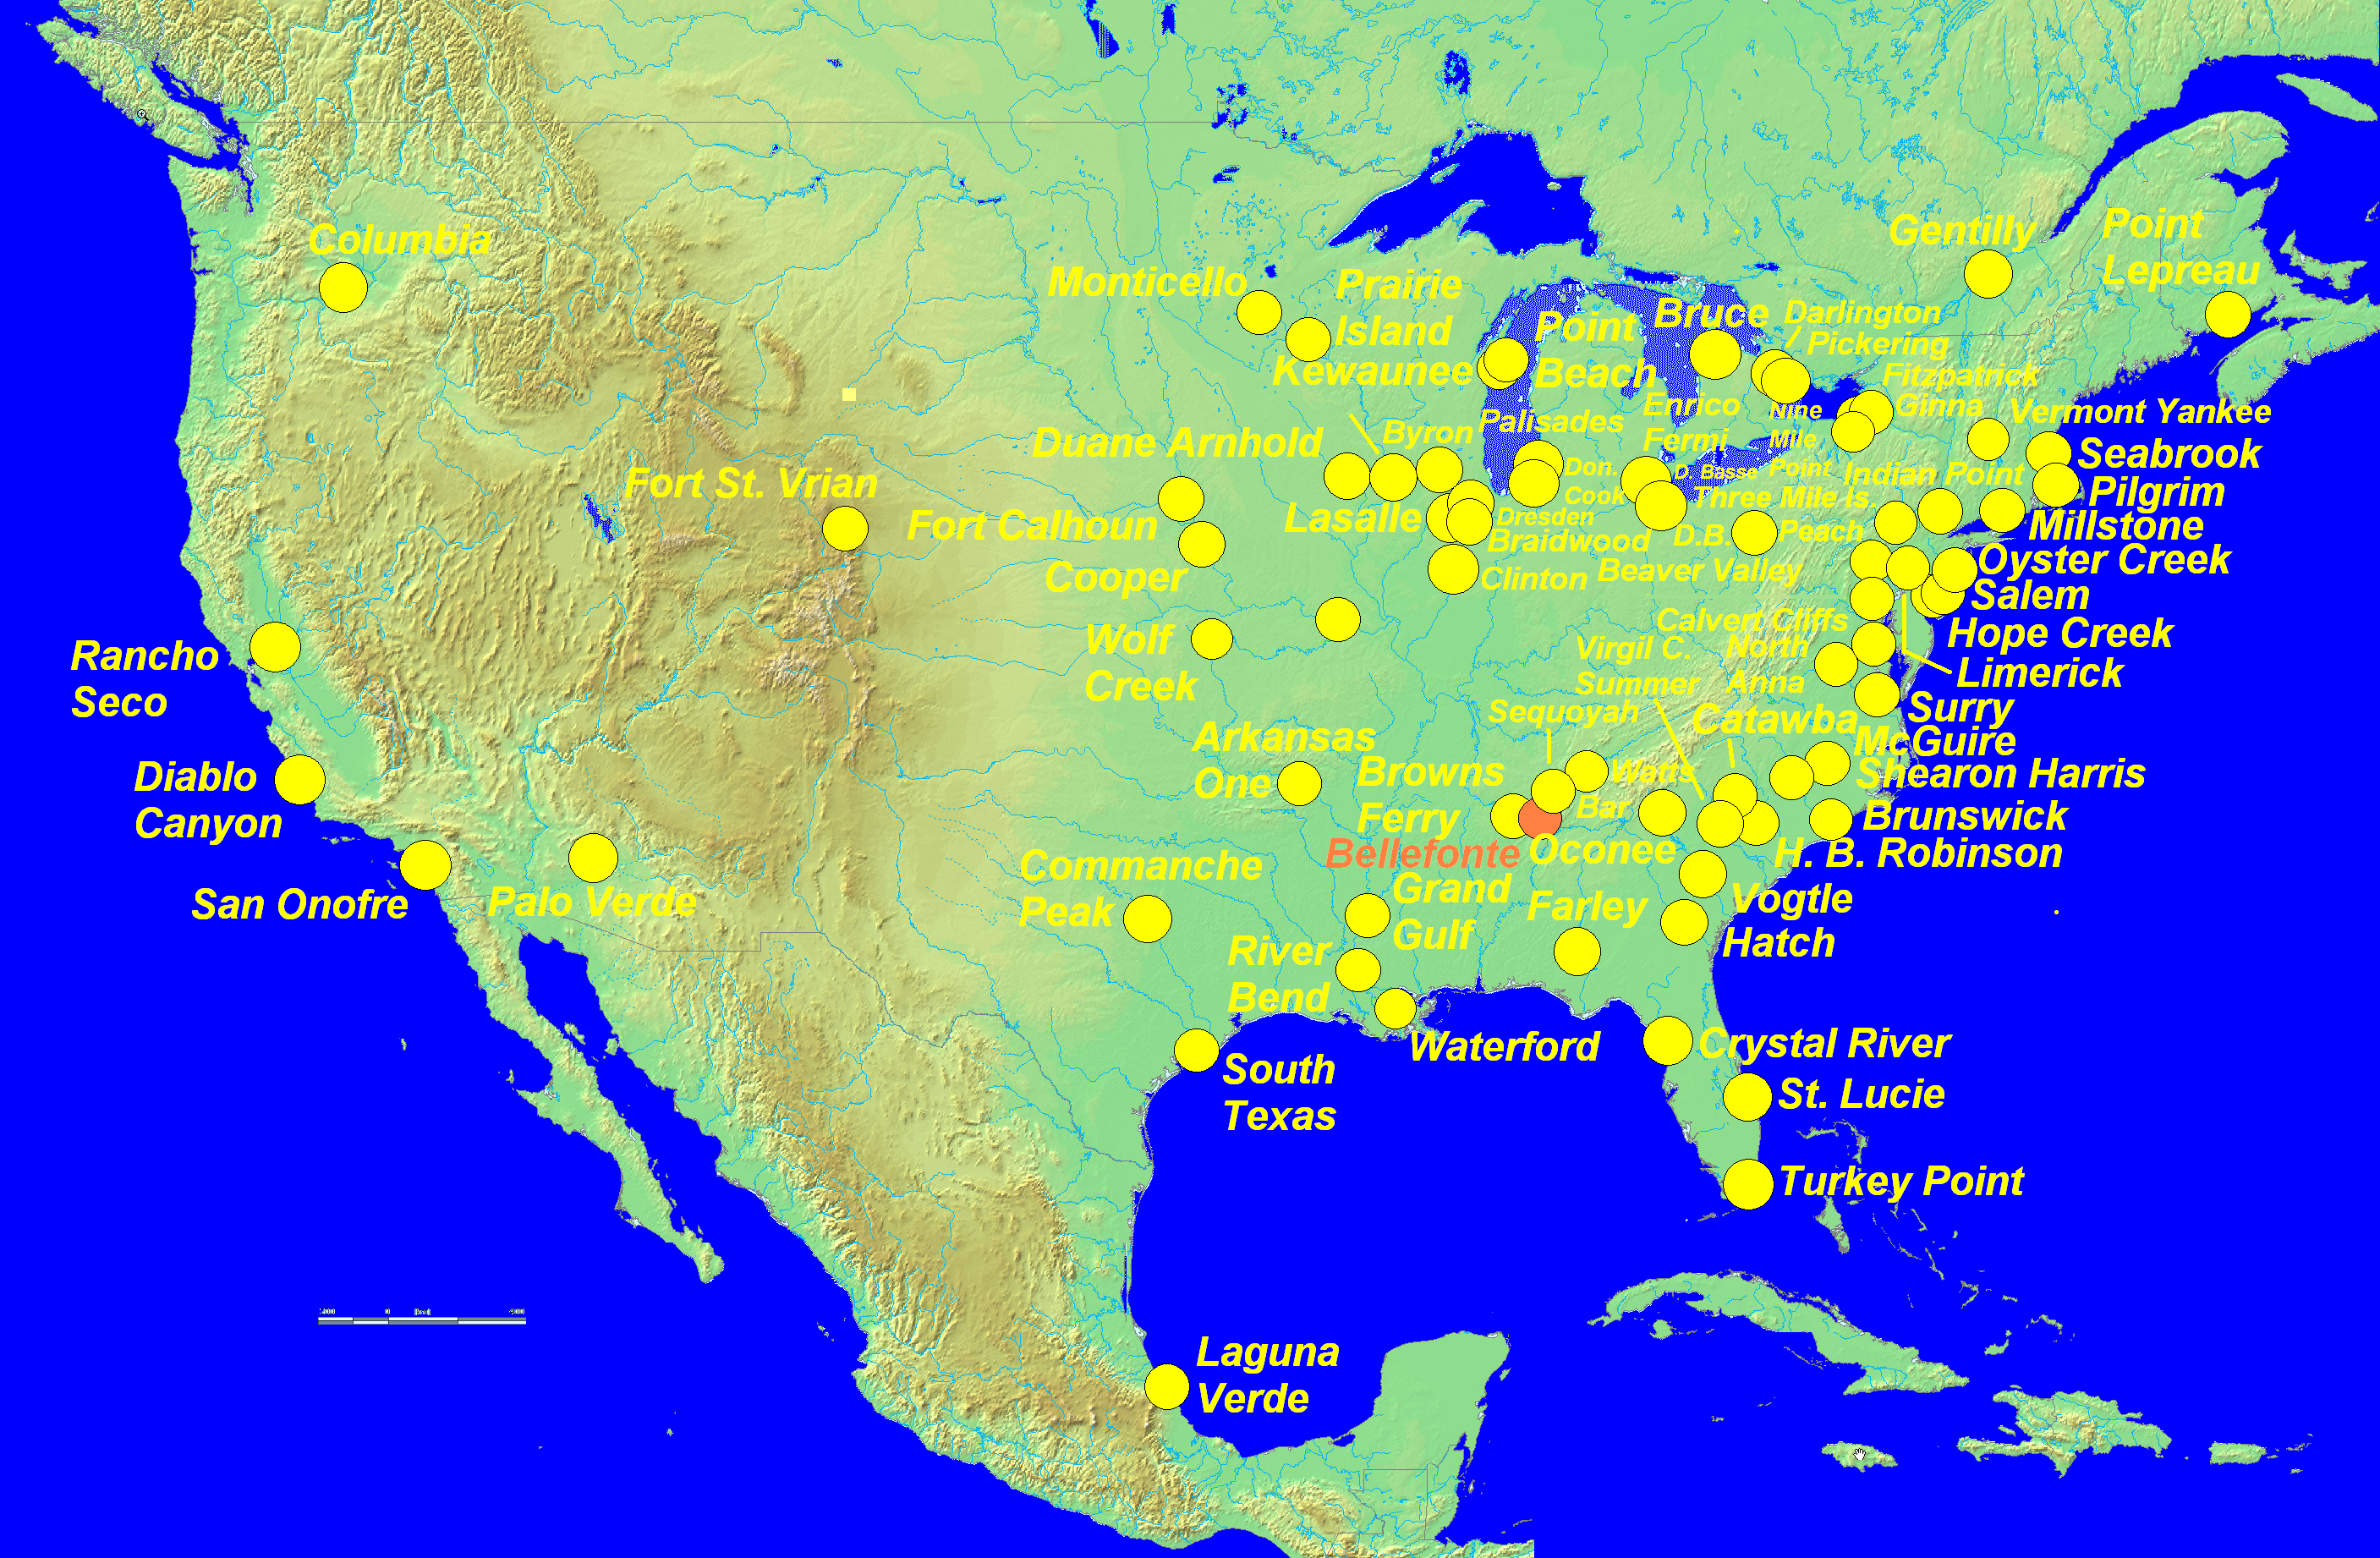 FileMap Of Nuclear Plants US Png Wikimedia Commons - Map nuclear power plants in us